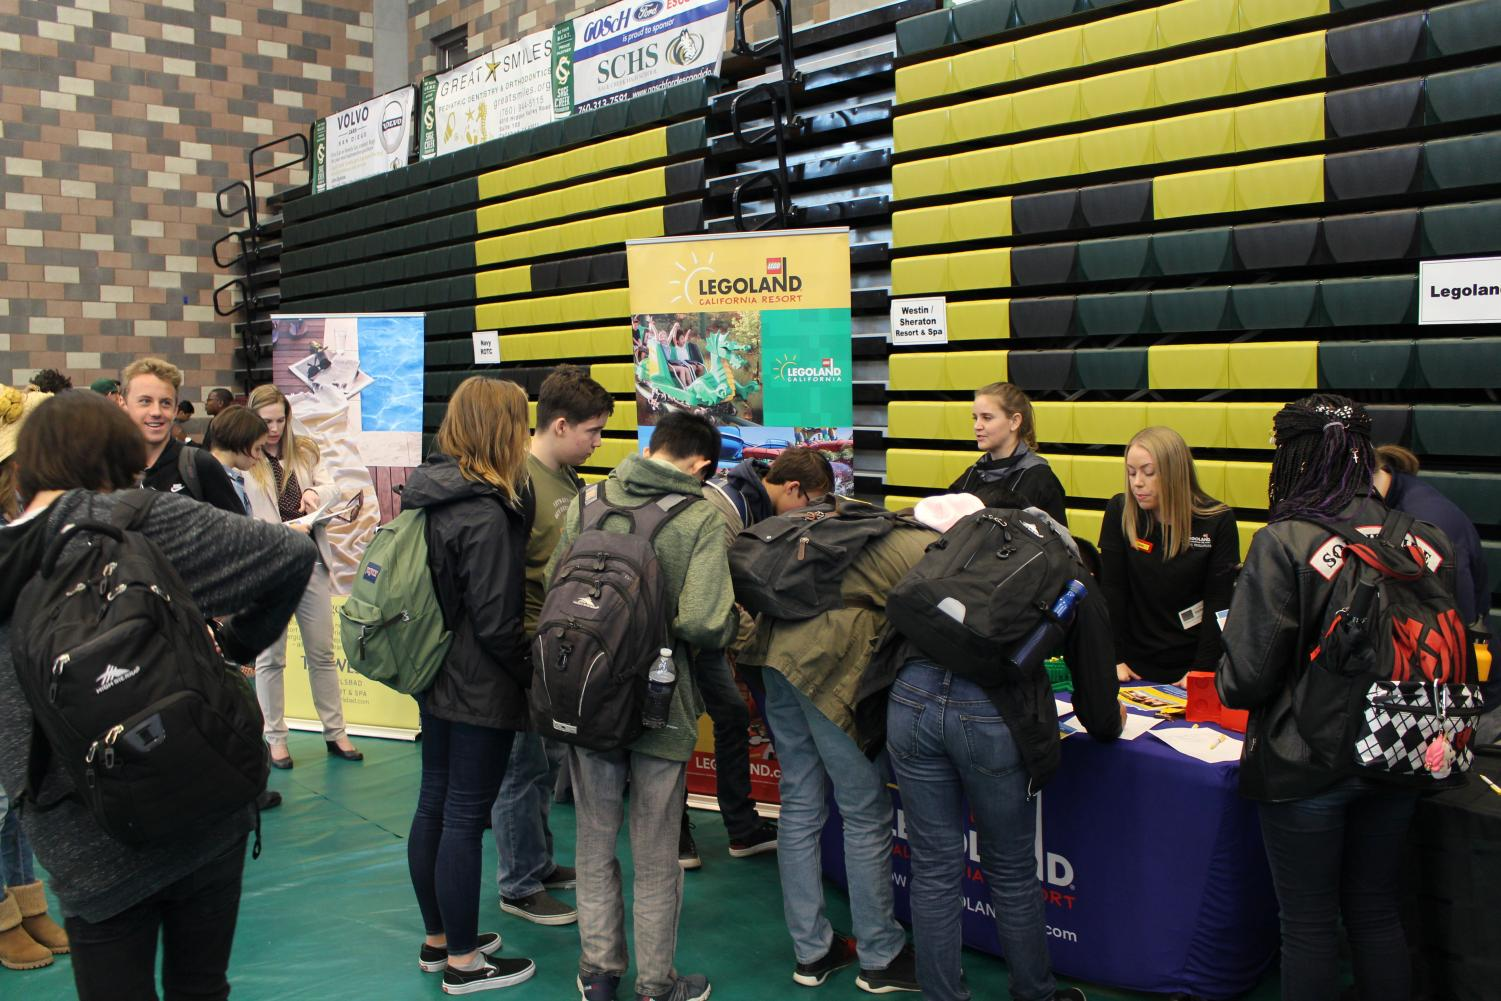 Students+line+up+in+front+of+the+Legoland+job+stand+to+get+information+about+potential+jobs.+The+JIVE+Expo+offered+many+jobs+for+students+ranging+from+Jersey+Mike%E2%80%99s+Subs+to+the+Wave+Waterpark.+